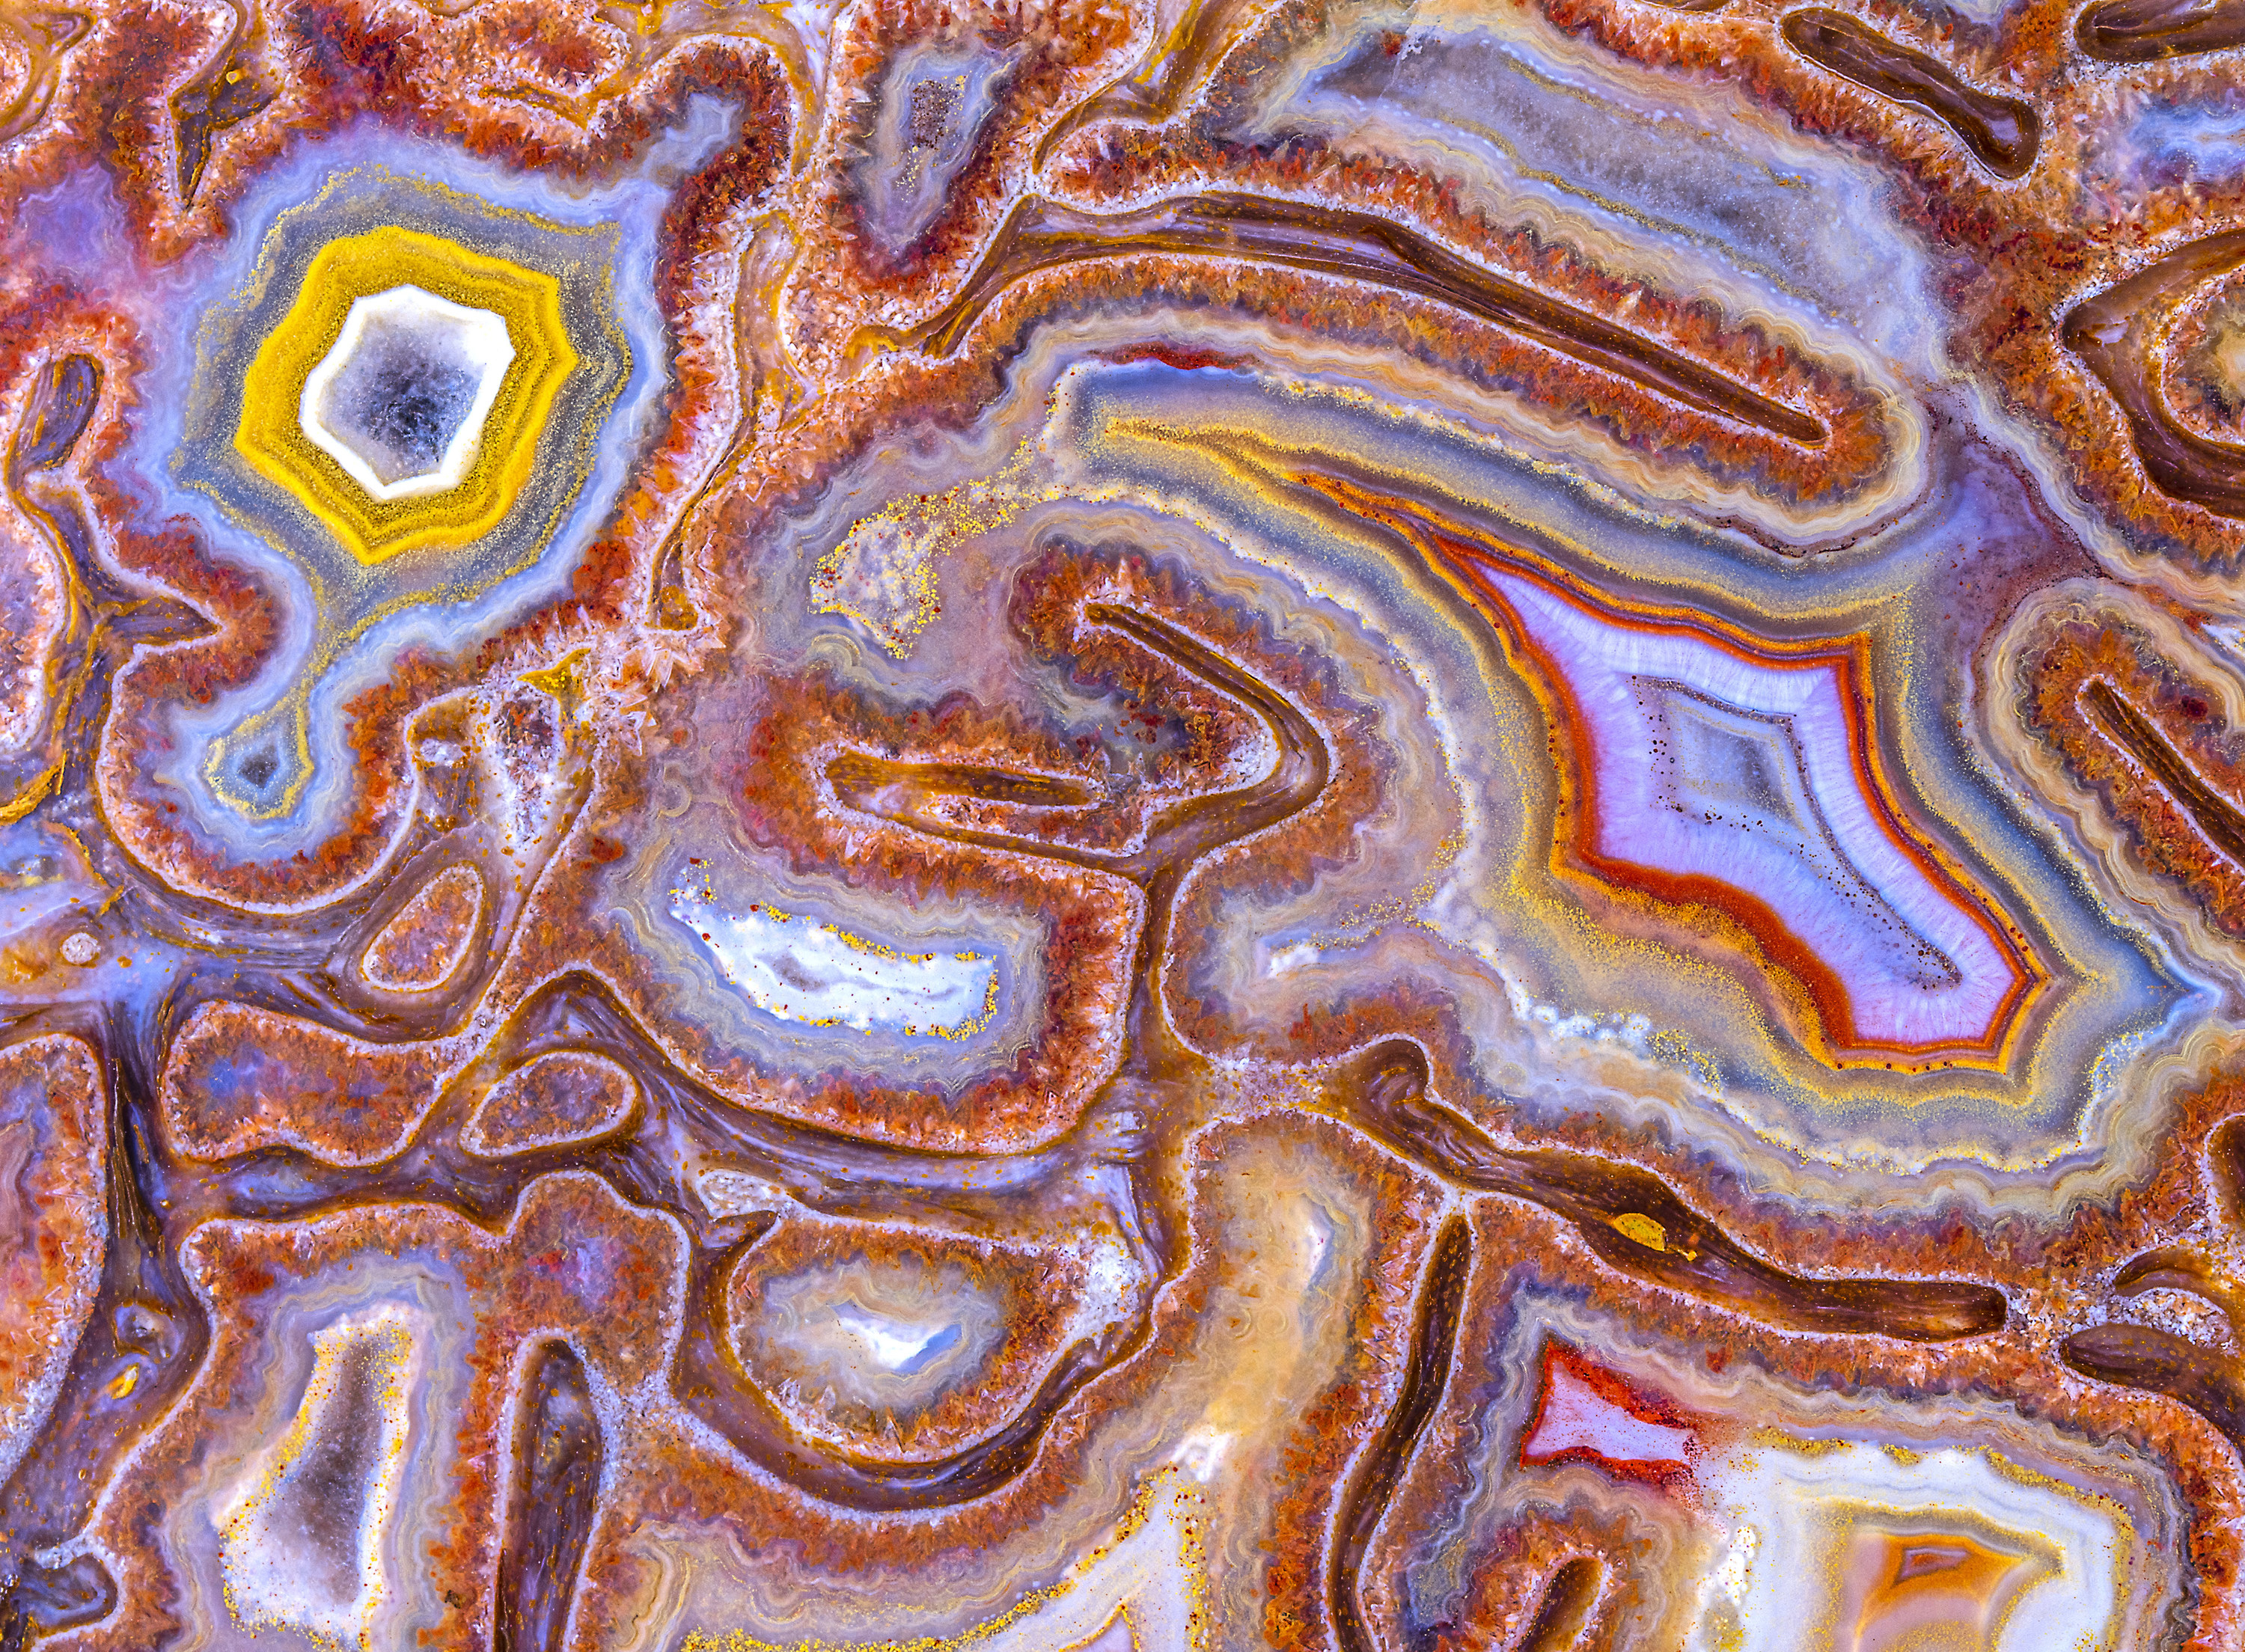 Swirls and pockets of color on an agatized dinosaur bone,  magnified many times